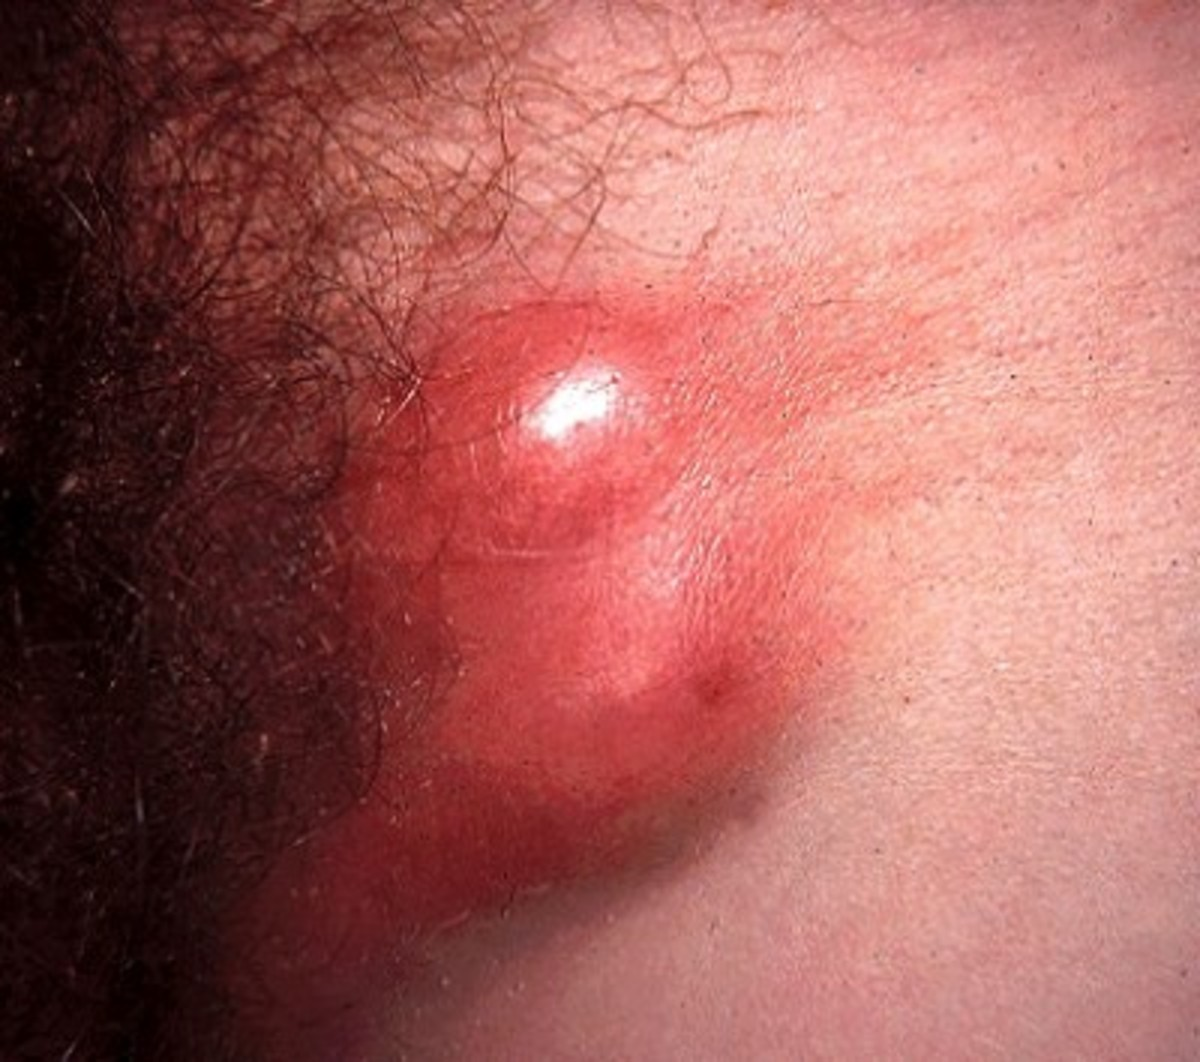 lymphogranuloma-venereum-health-relevance-clinical-presentations-diagnosis-and-treatment